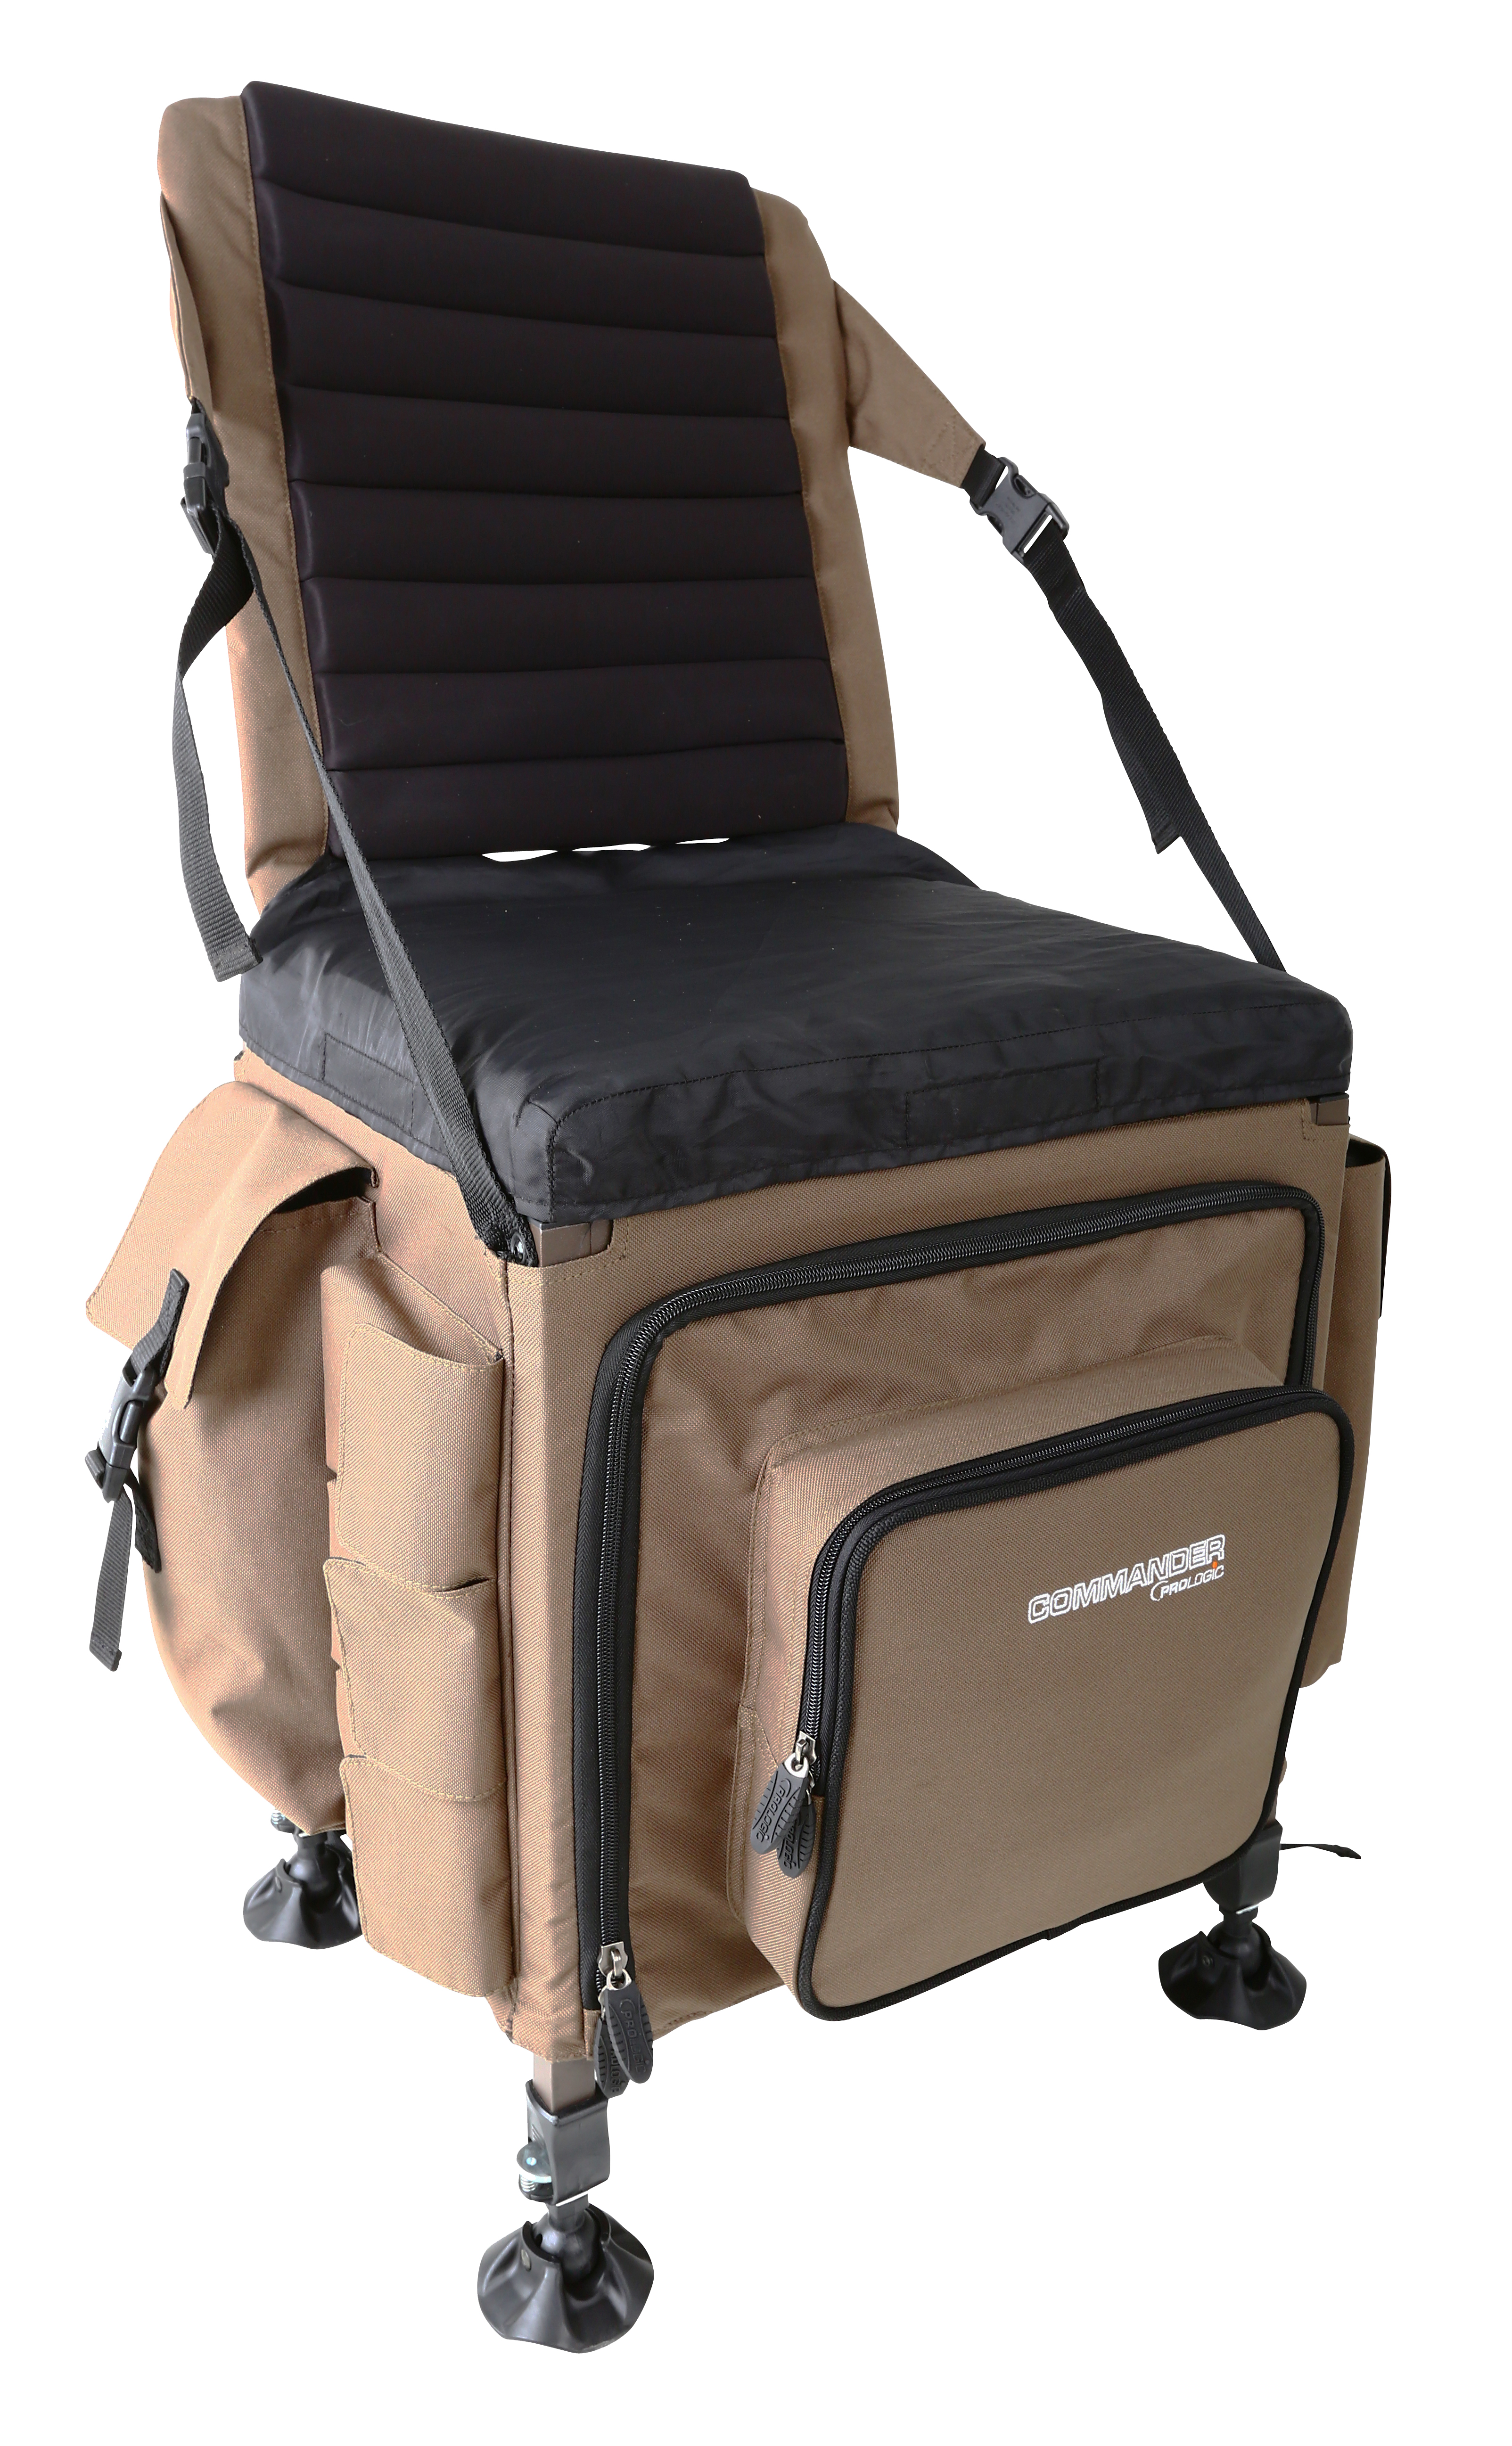 Prologic commander chair amp backpack 87x53x40cm glasgow angling